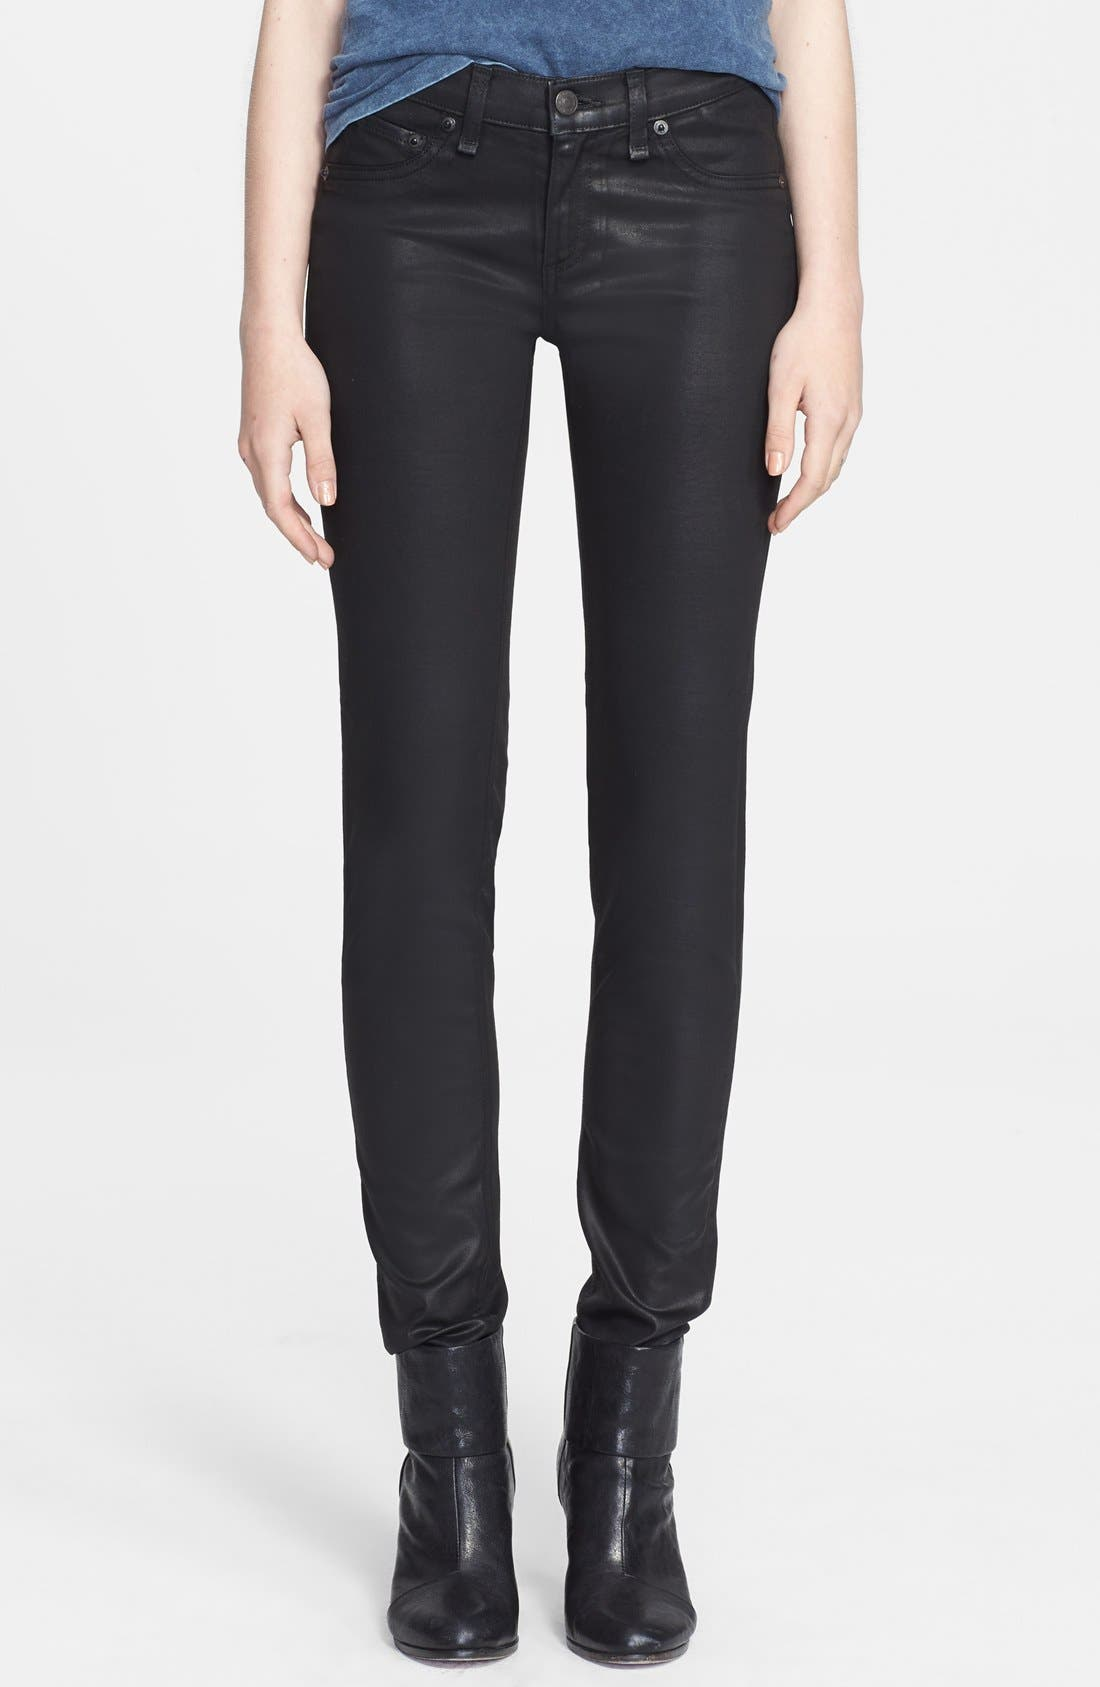 Alternate Image 1 Selected - rag & bone/JEAN 'The Danny' Coated Leggings